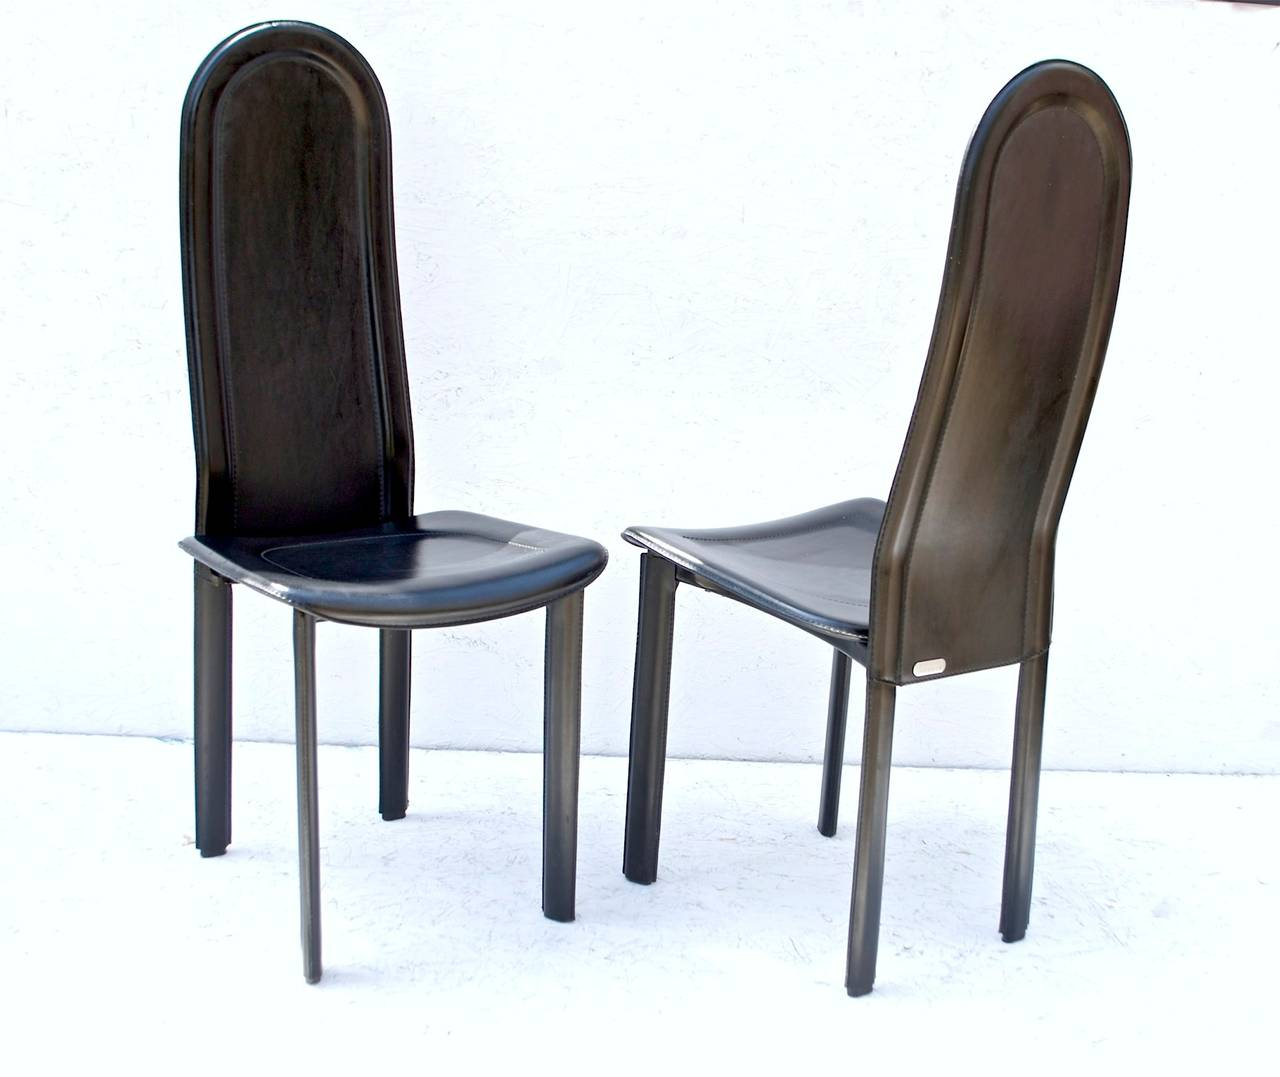 Black Leather Dining Room Chairs Black Leather Dining Chairs By Artedi Uk At 1stdibs